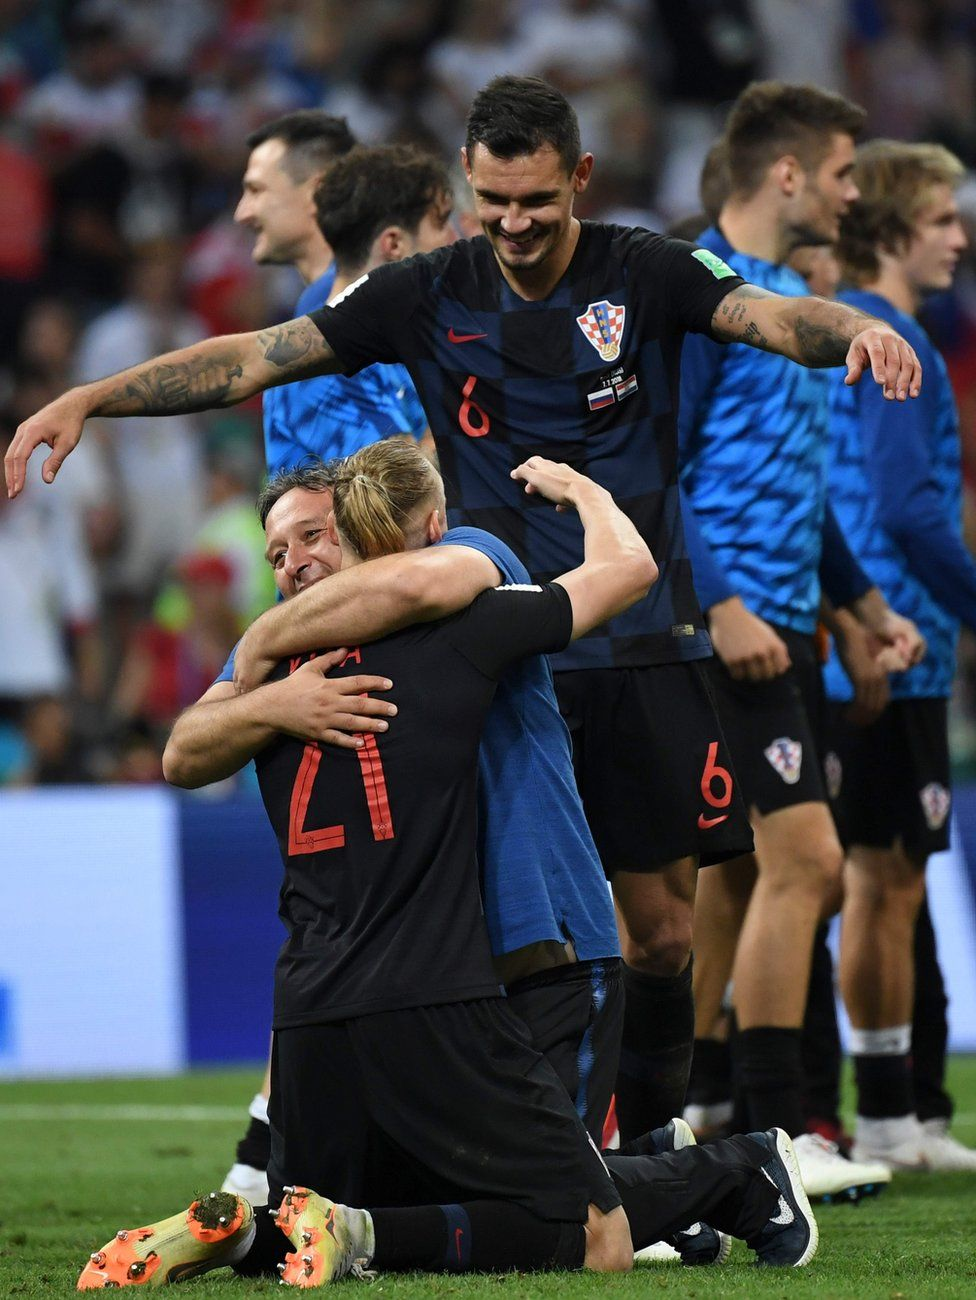 Croatia's players celebrate their win against Russia in the World Cup quarter final match, 7 July 2018